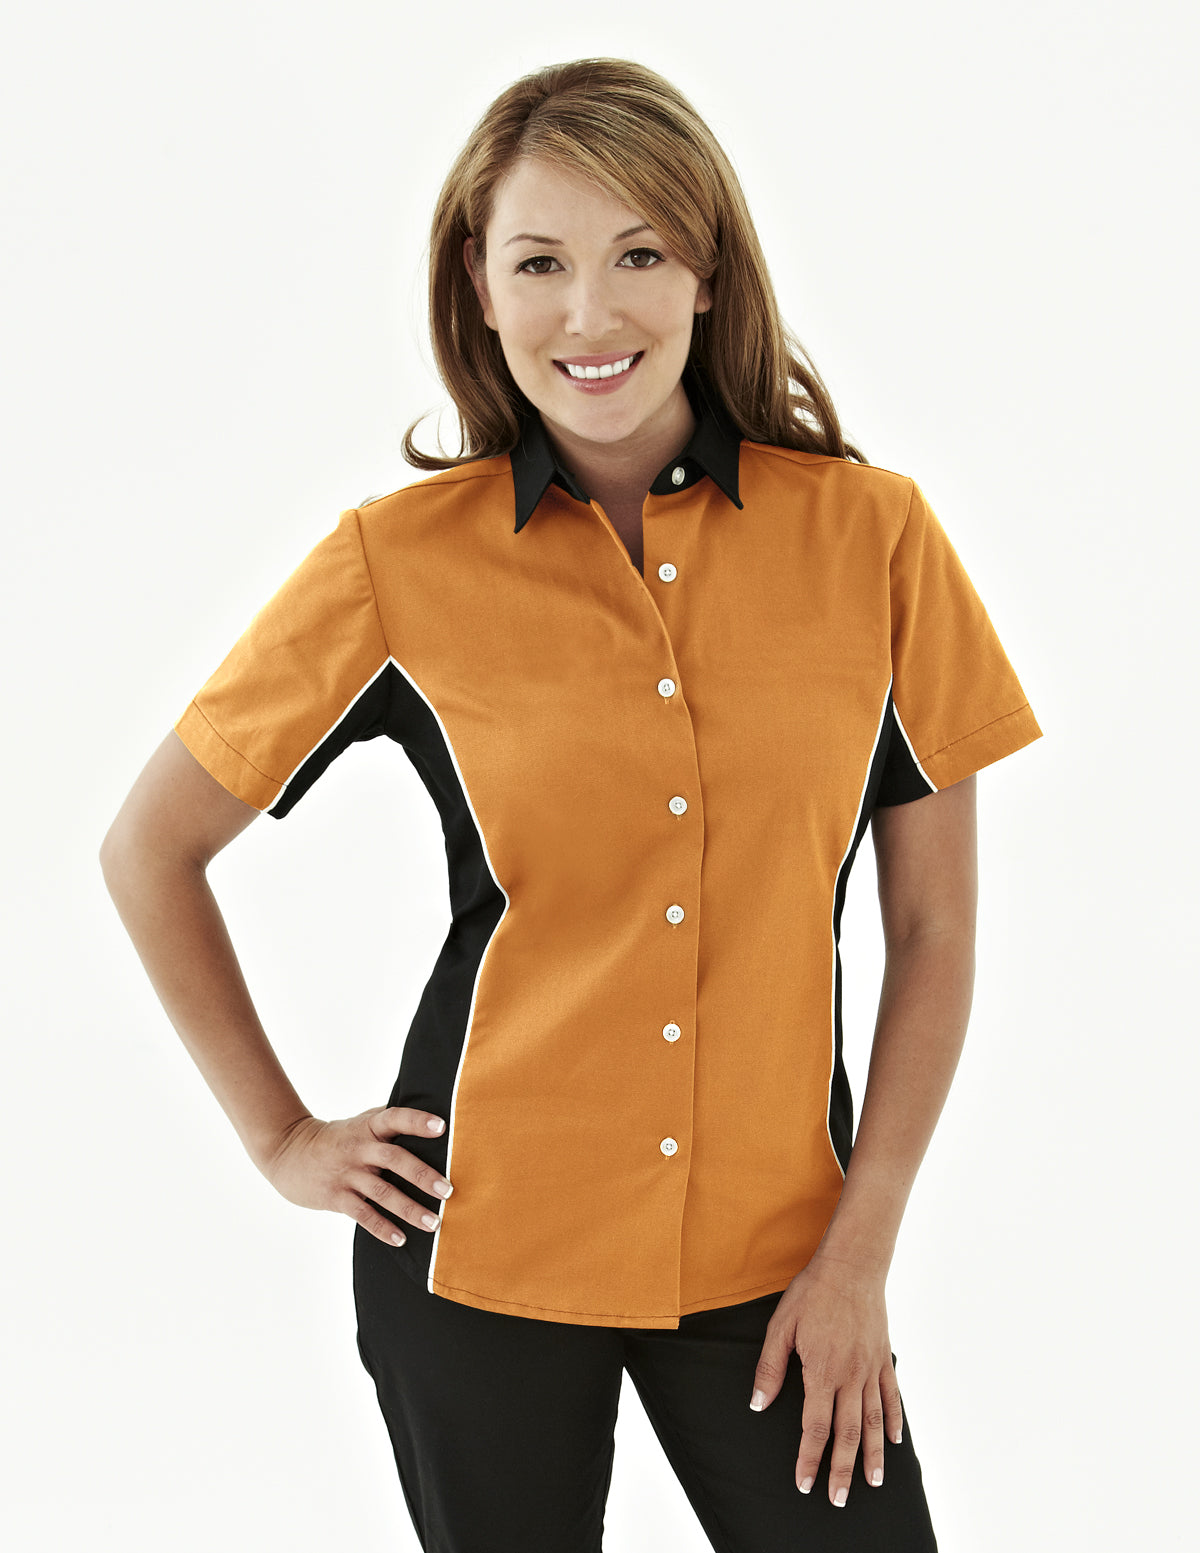 Upshifter-Tmr Womens 60/40 Twill Shirt With Piping